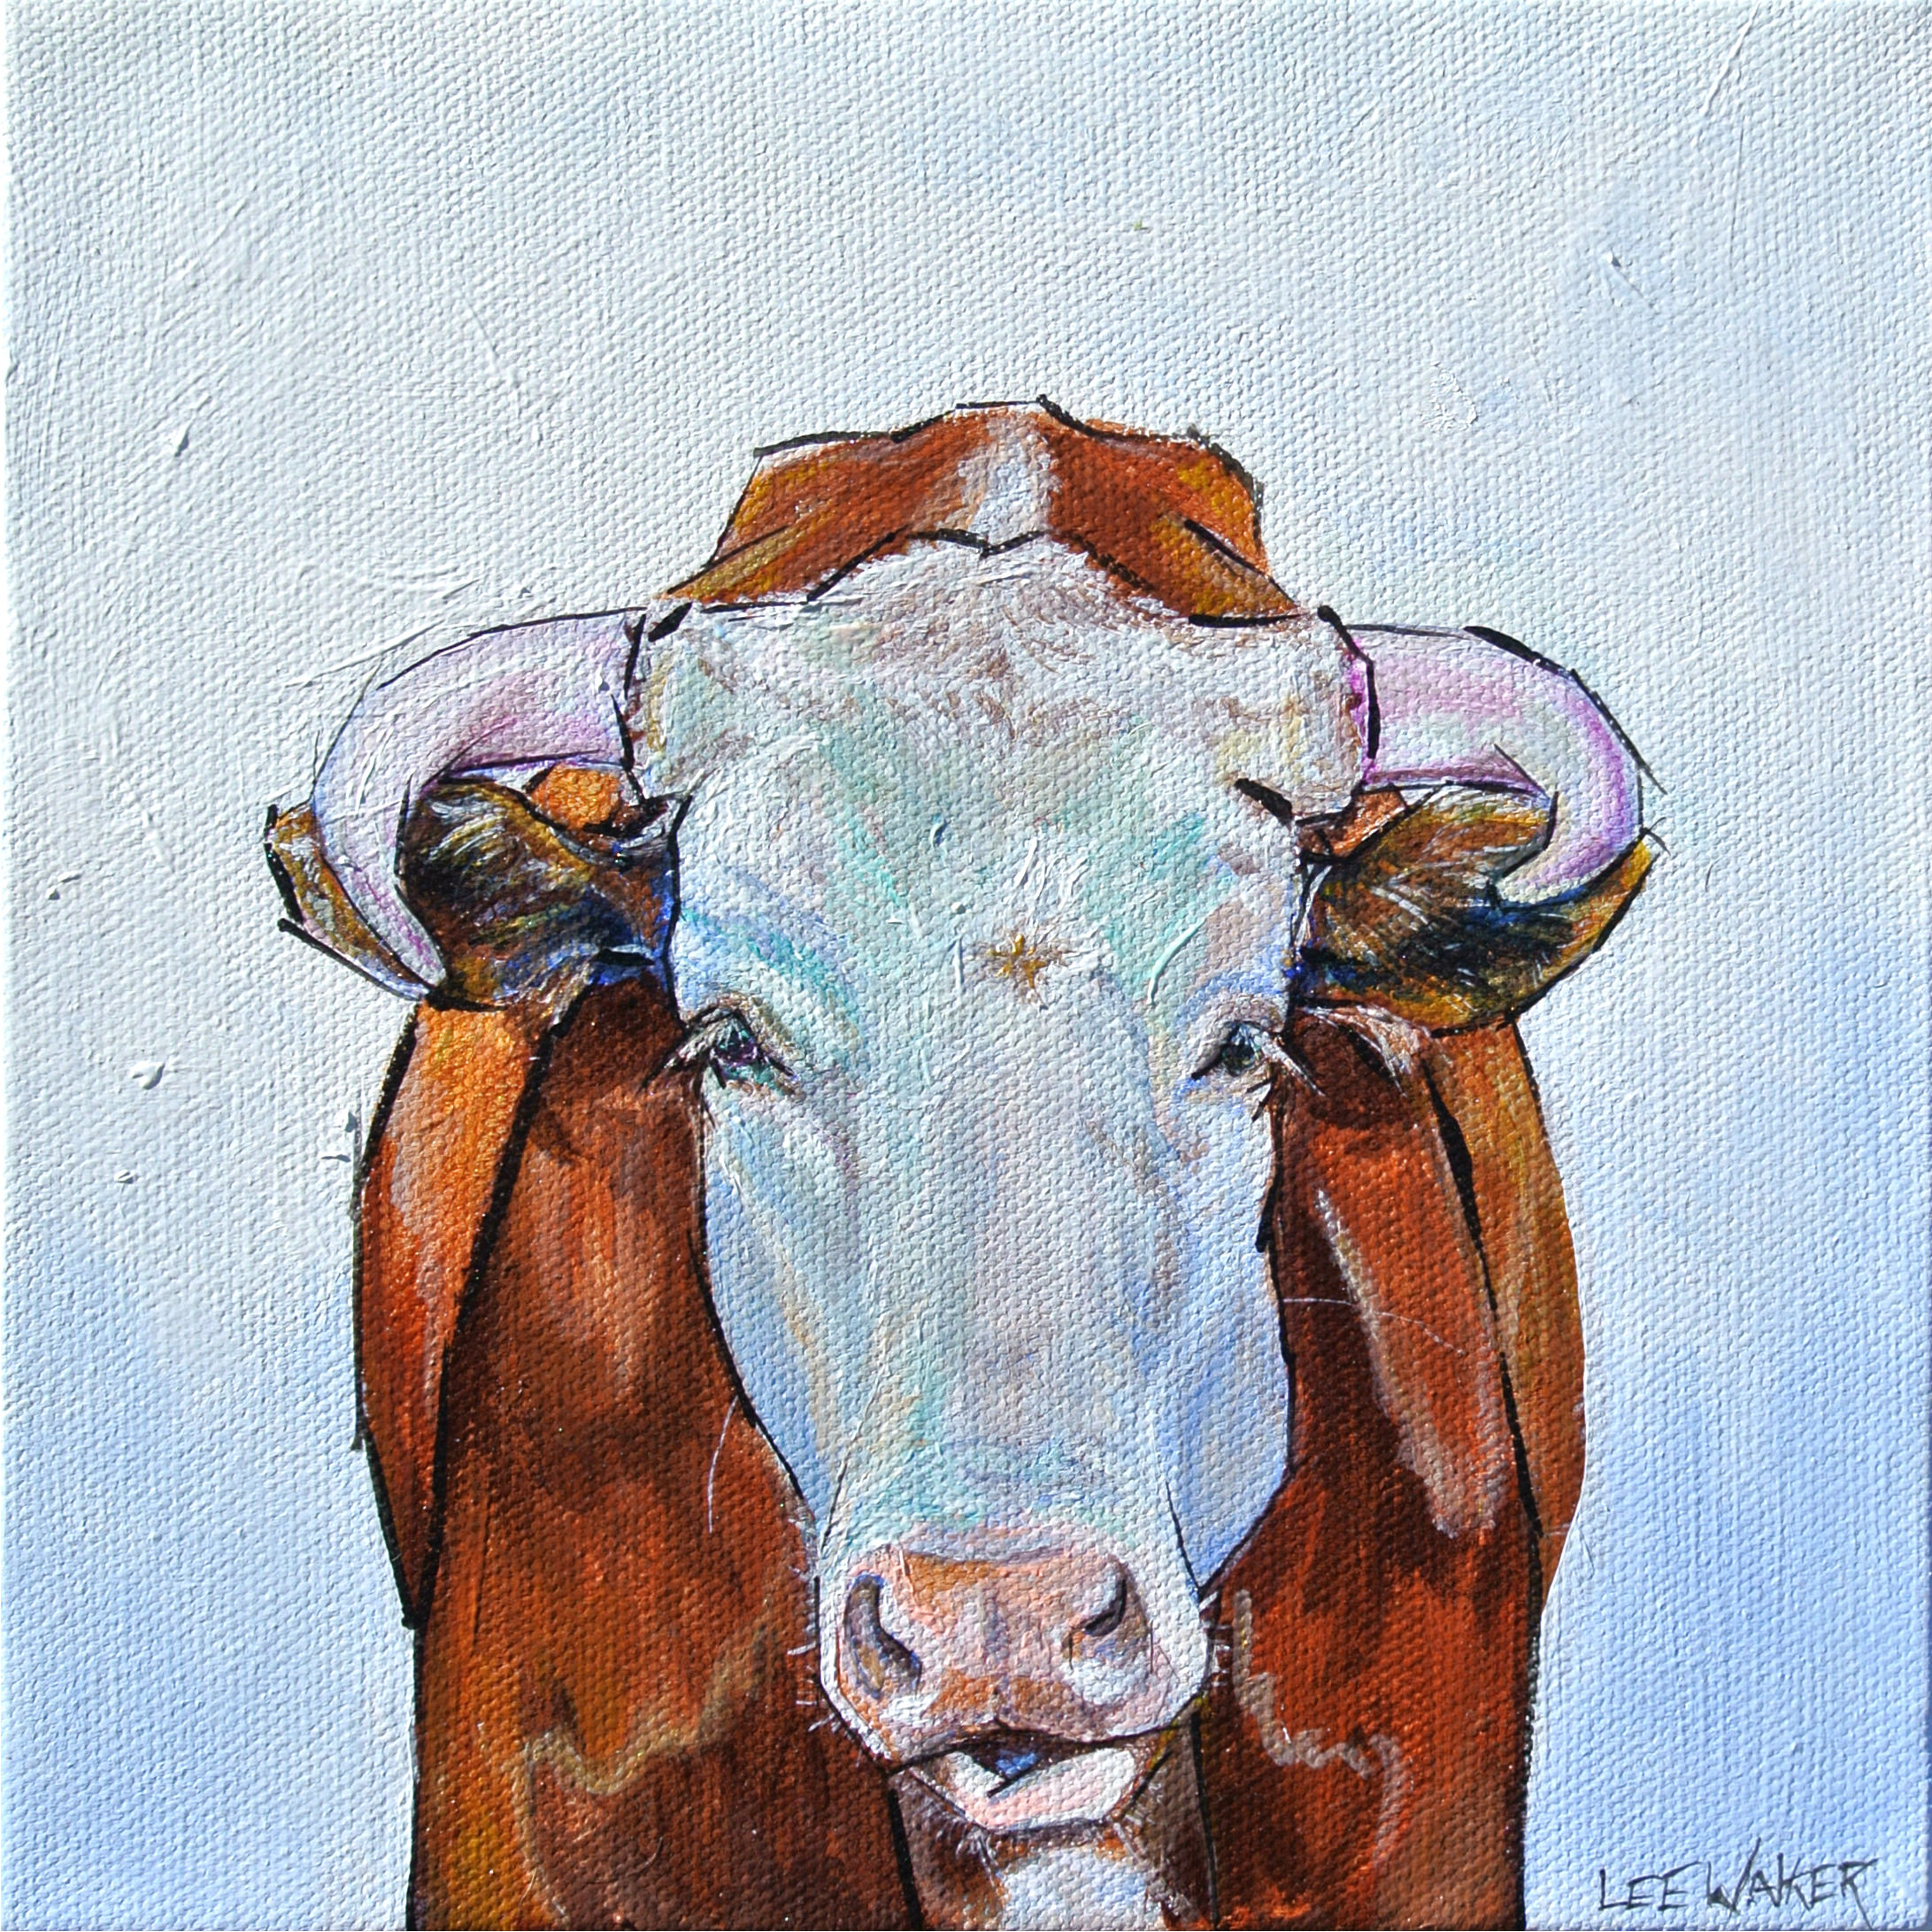 Hereford Cow 8x8""